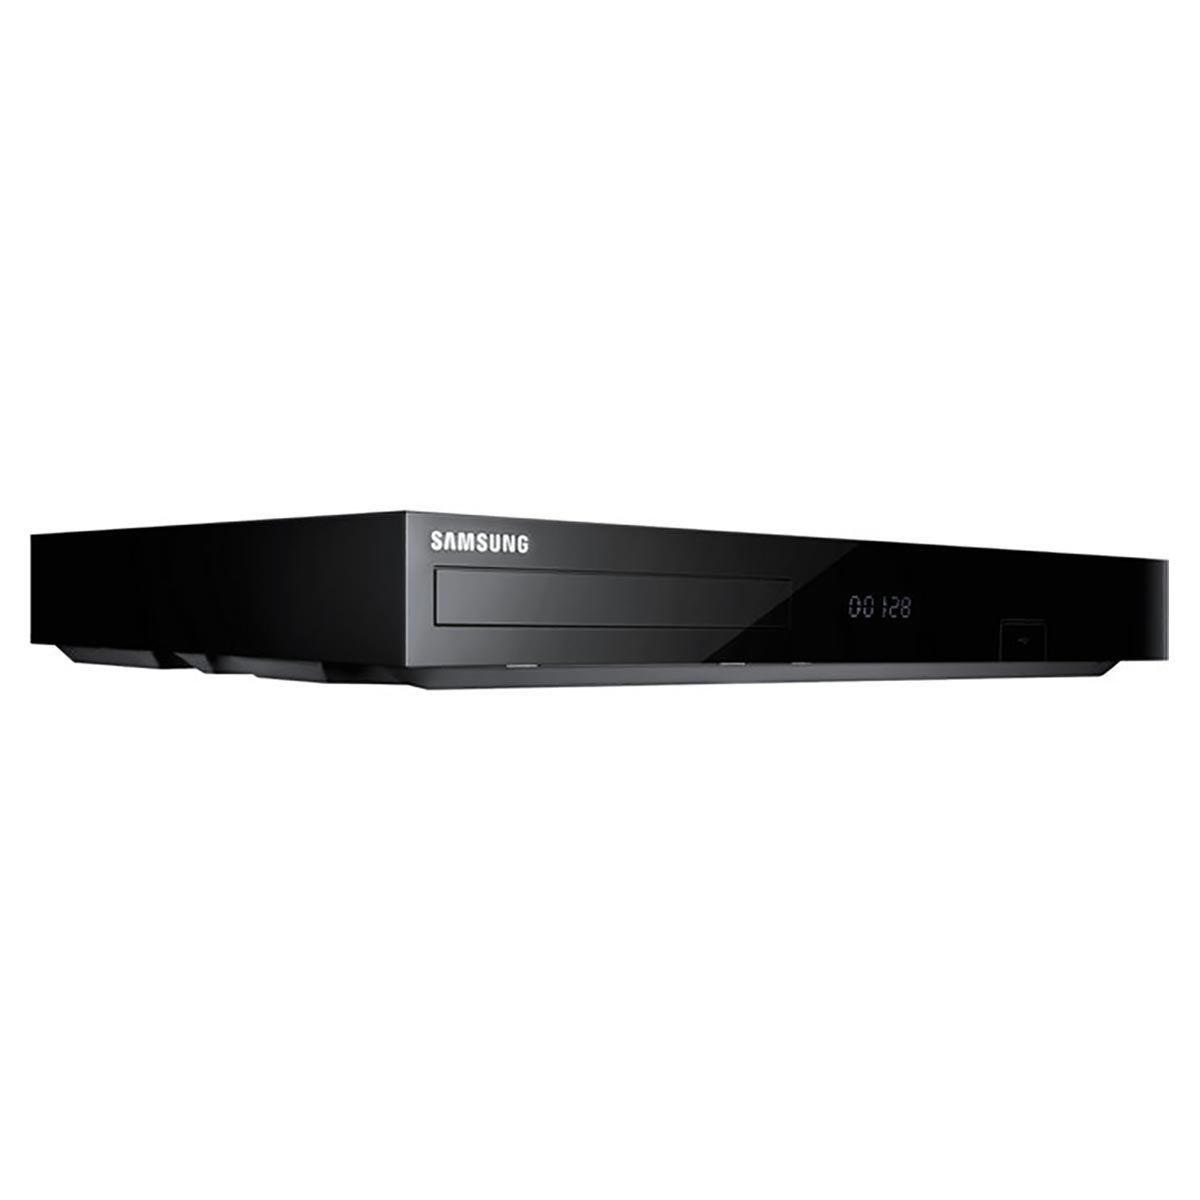 panasonic dmp bdt280gn smart network 3d blu ray disc. Black Bedroom Furniture Sets. Home Design Ideas